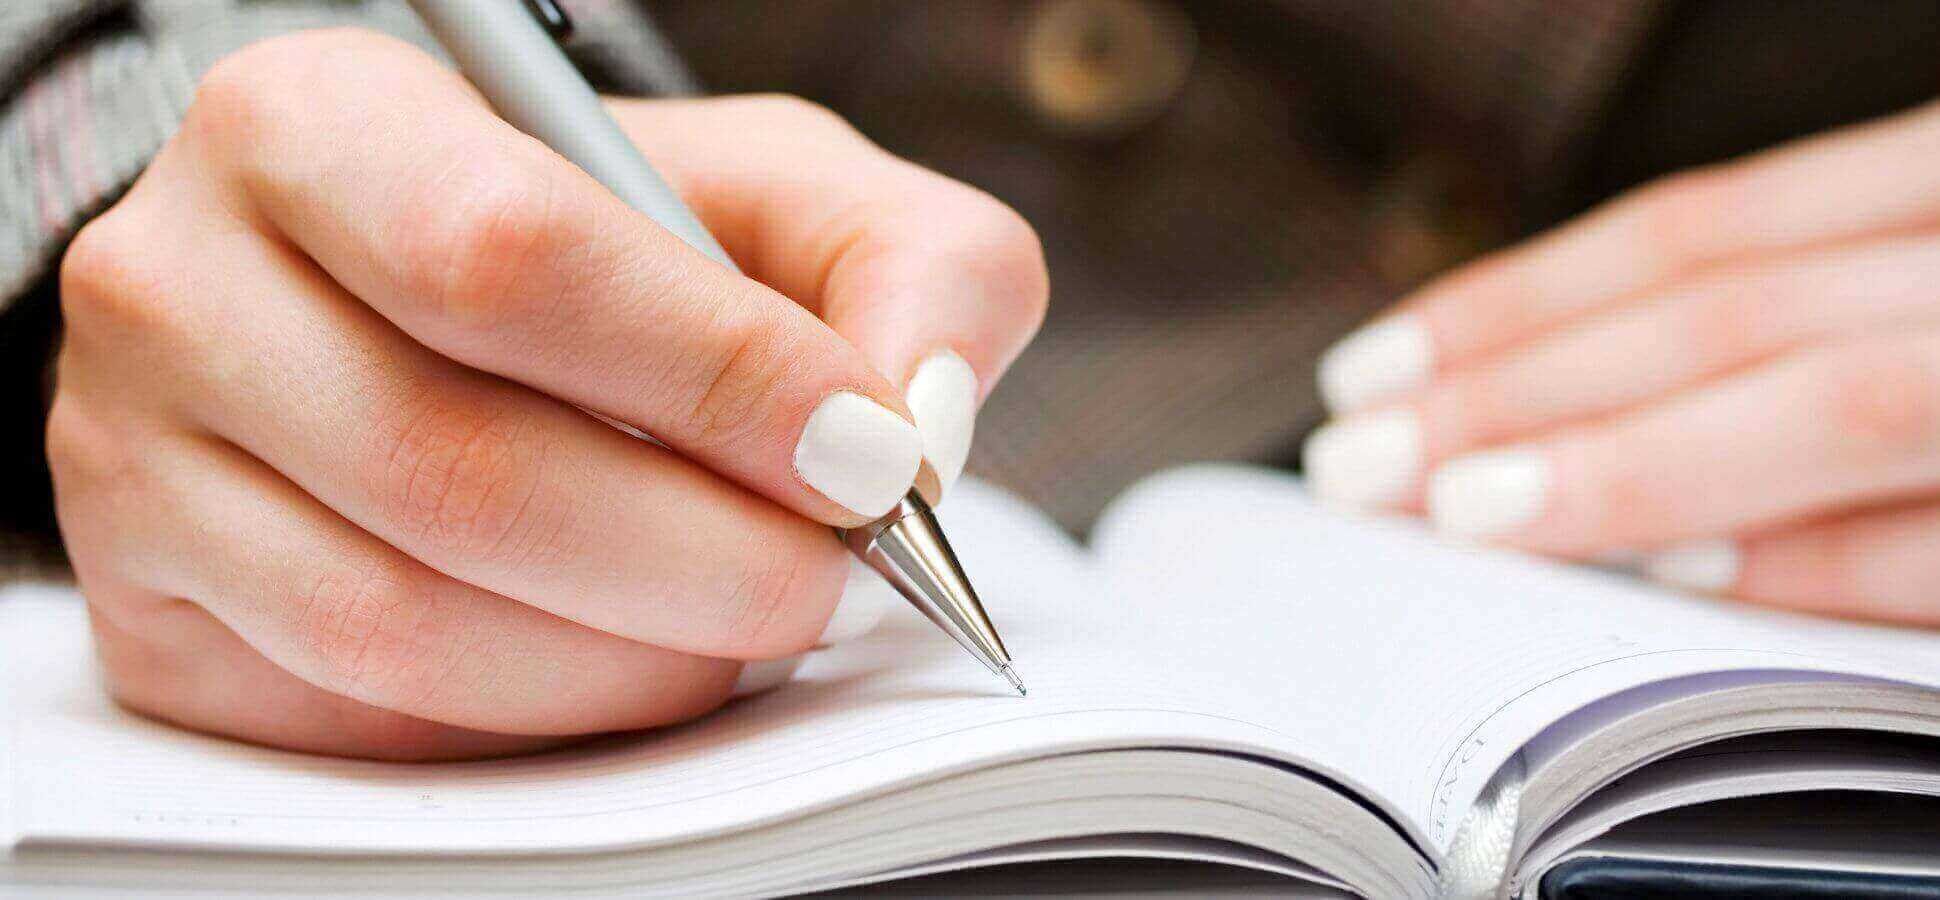 professional technical writing service usa - matc group